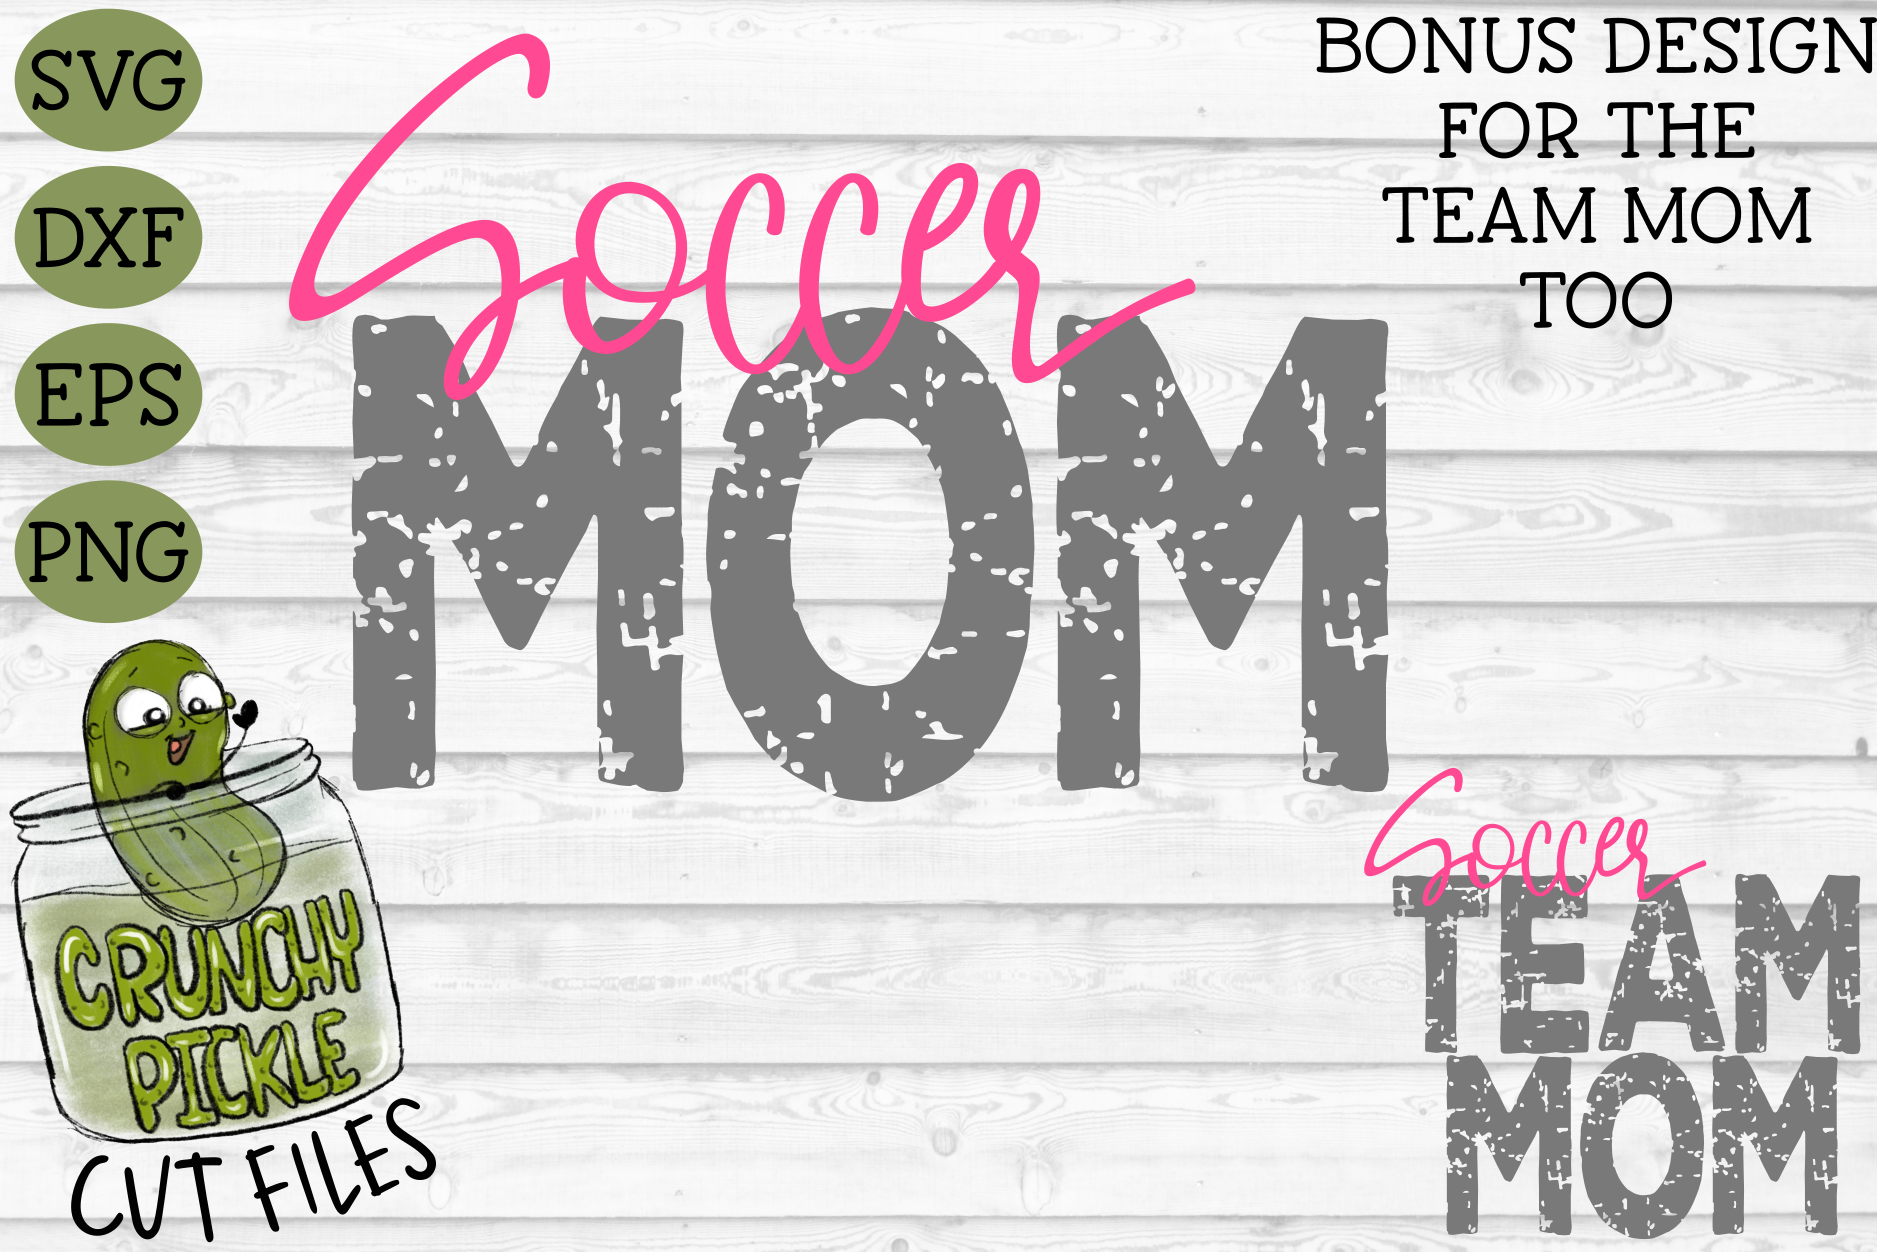 Soccer Mom & Bonus Team Mom Sports SVG Cut File example image 1